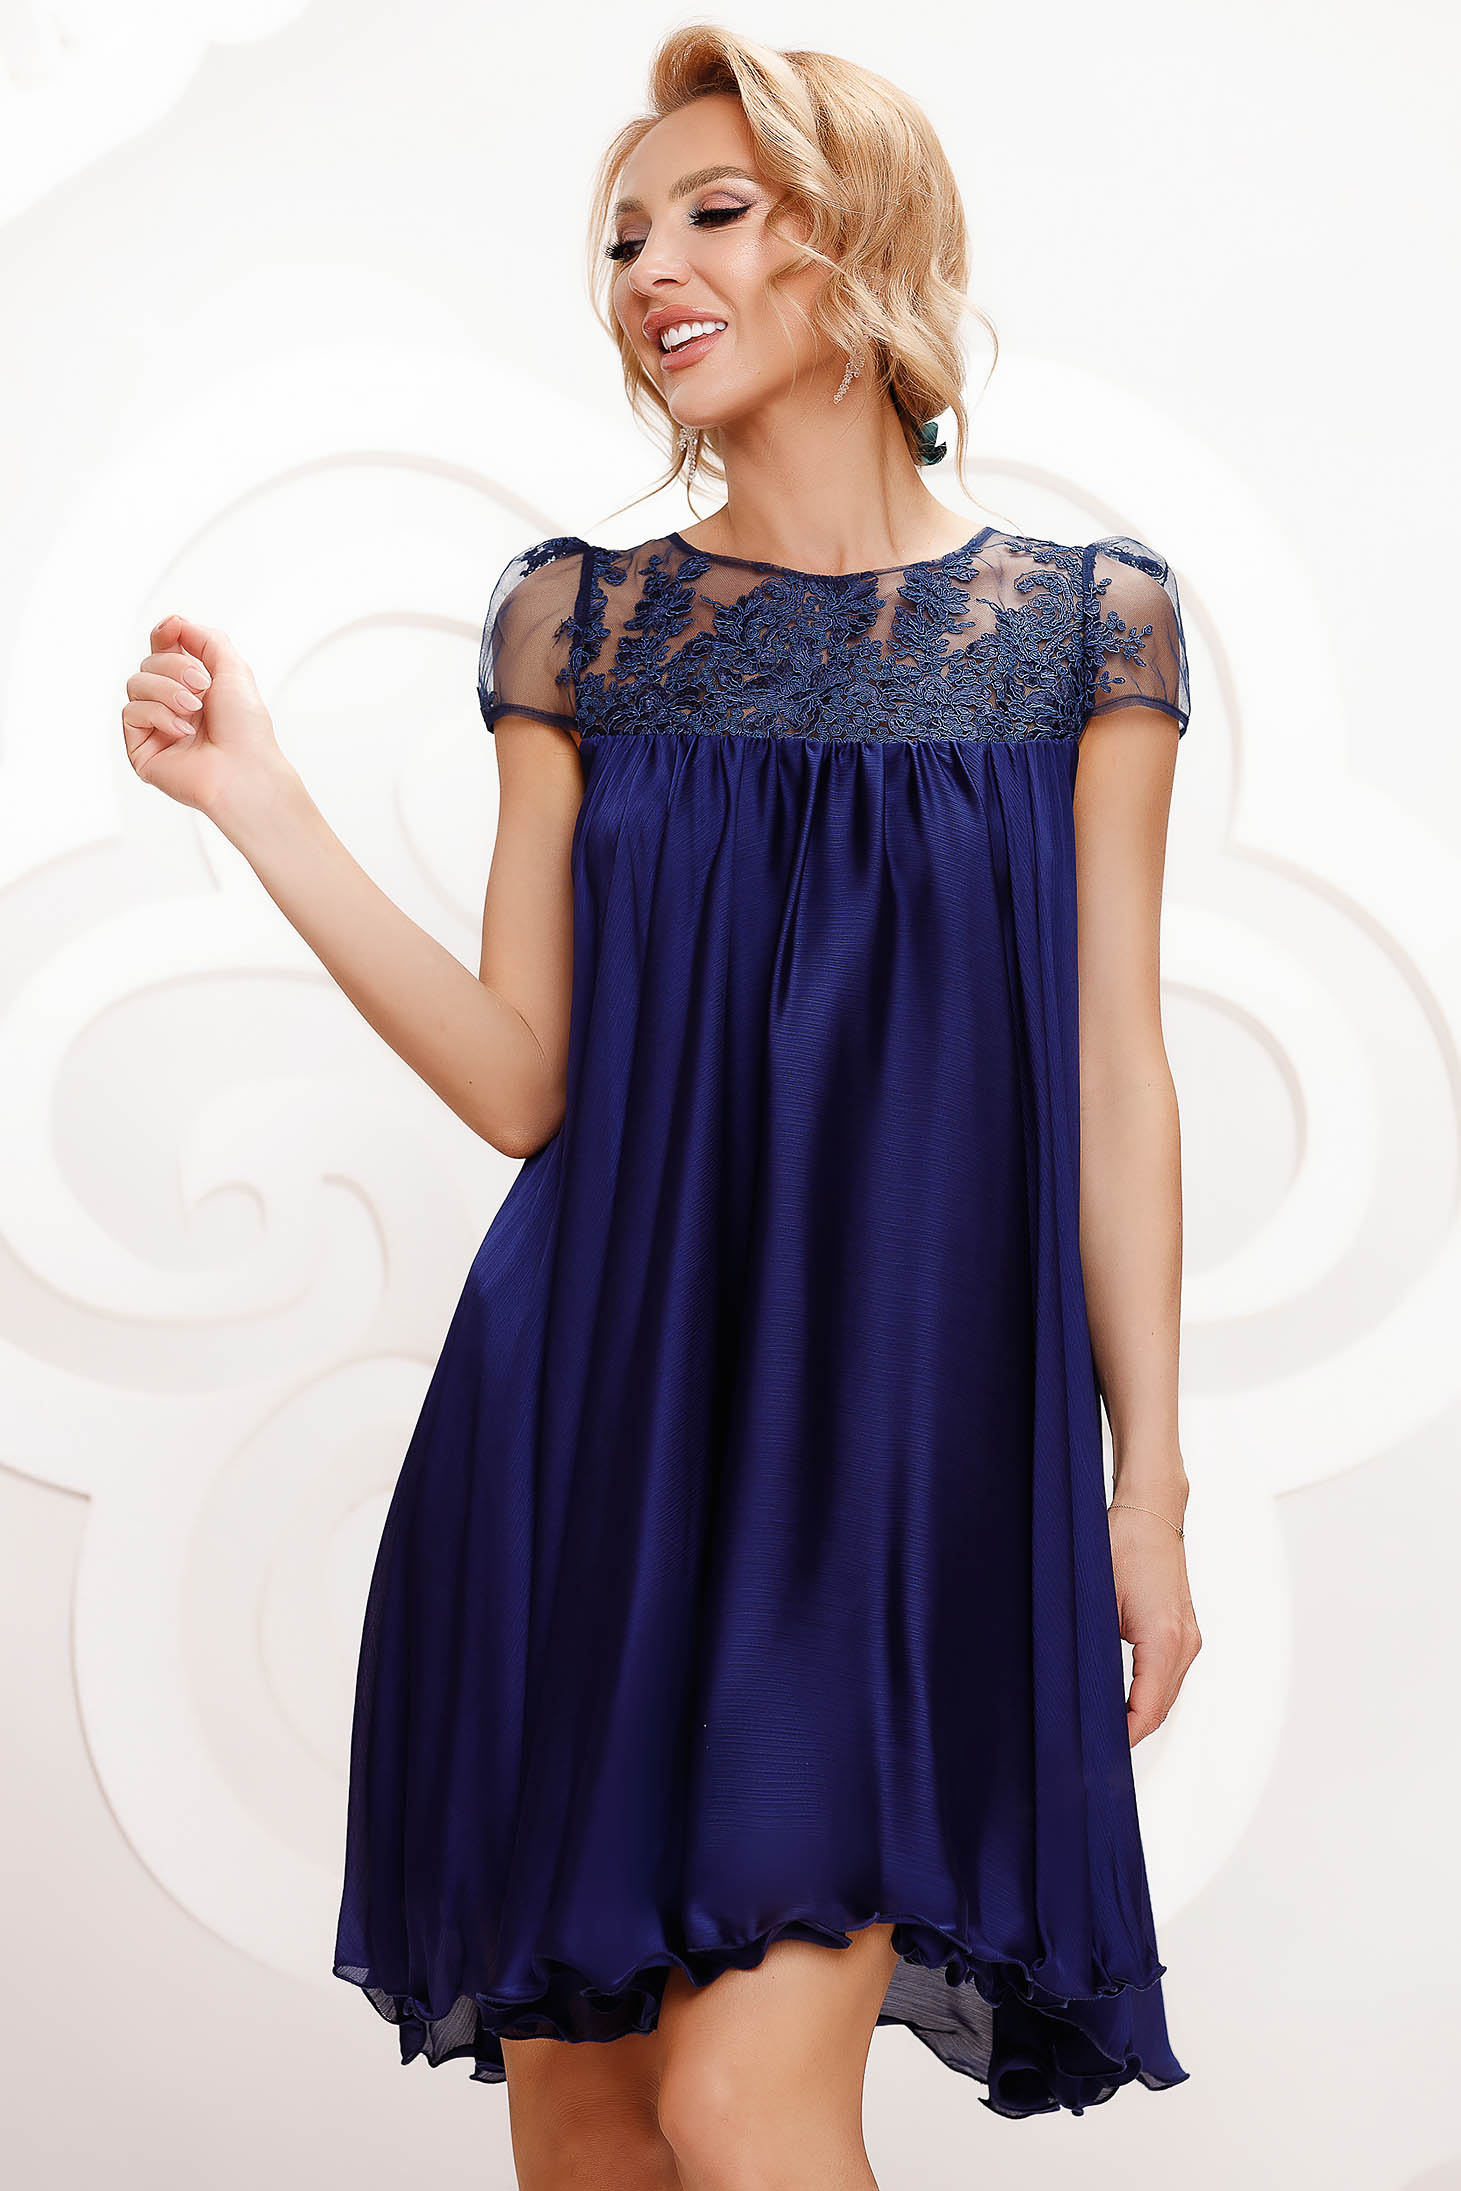 Darkblue dress from veil fabric occasional with lace details with crystal embellished details loose fit